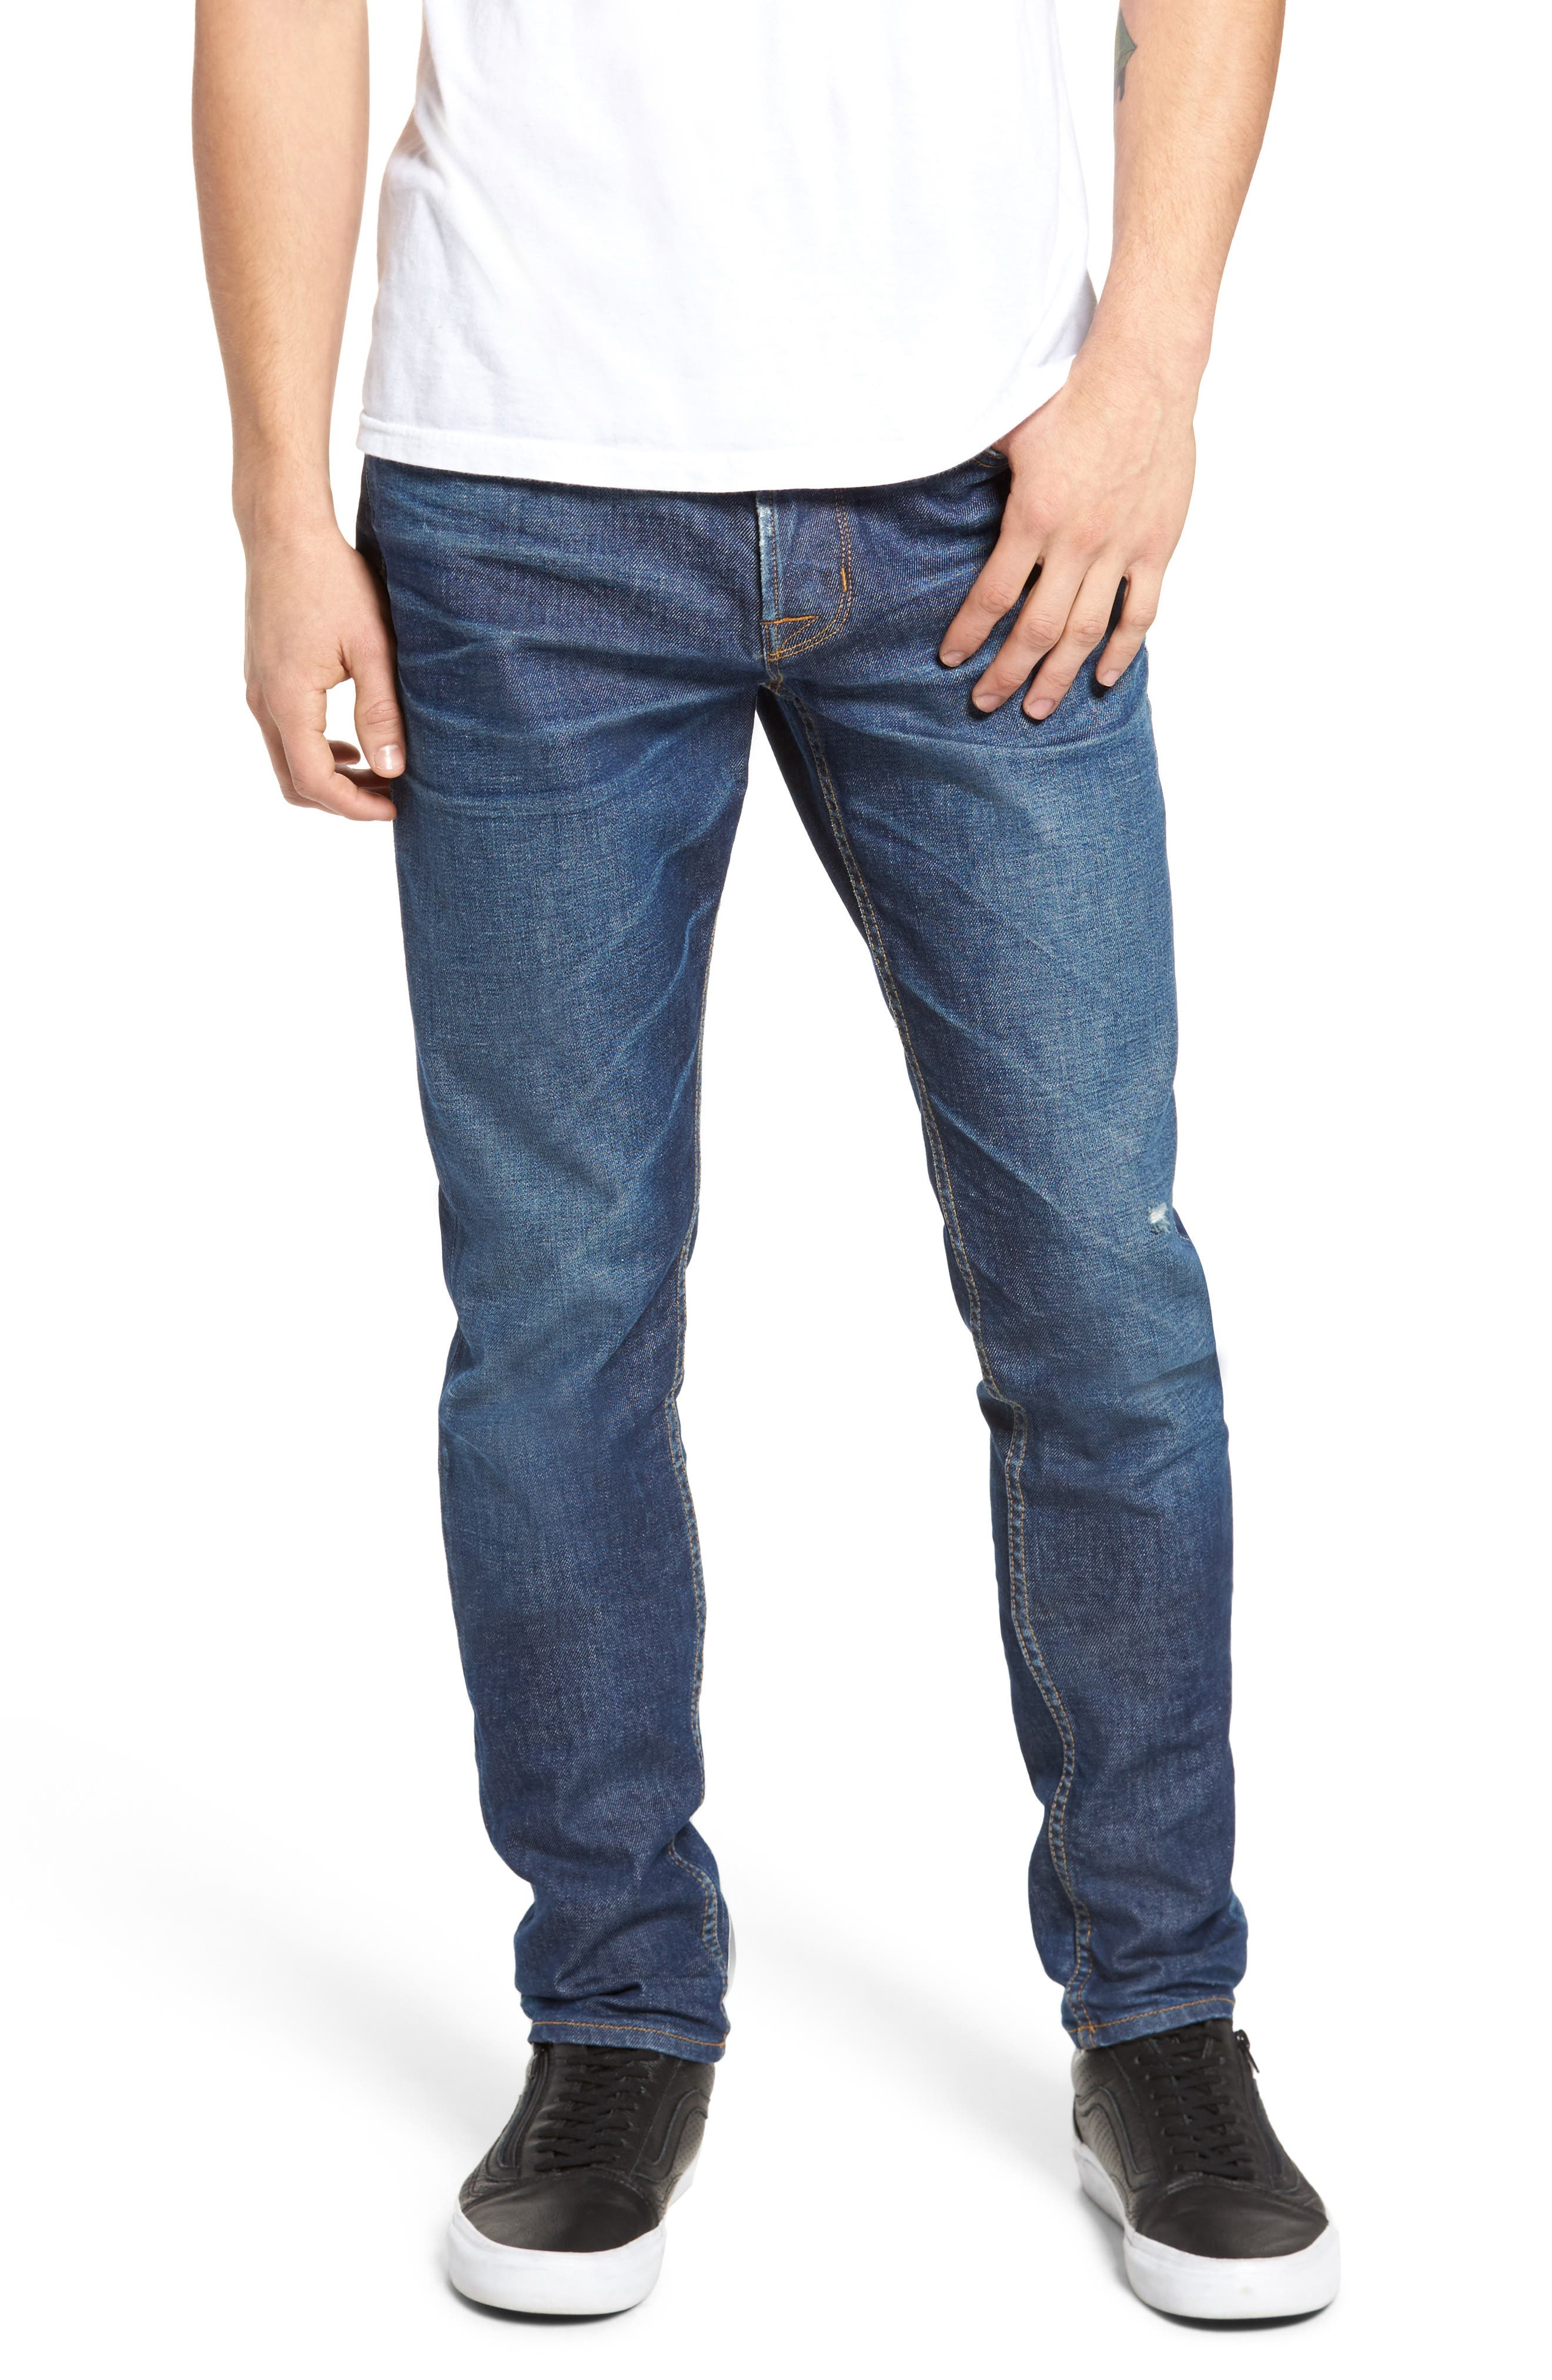 Axl Skinny Fit Jeans,                             Main thumbnail 1, color,                             423